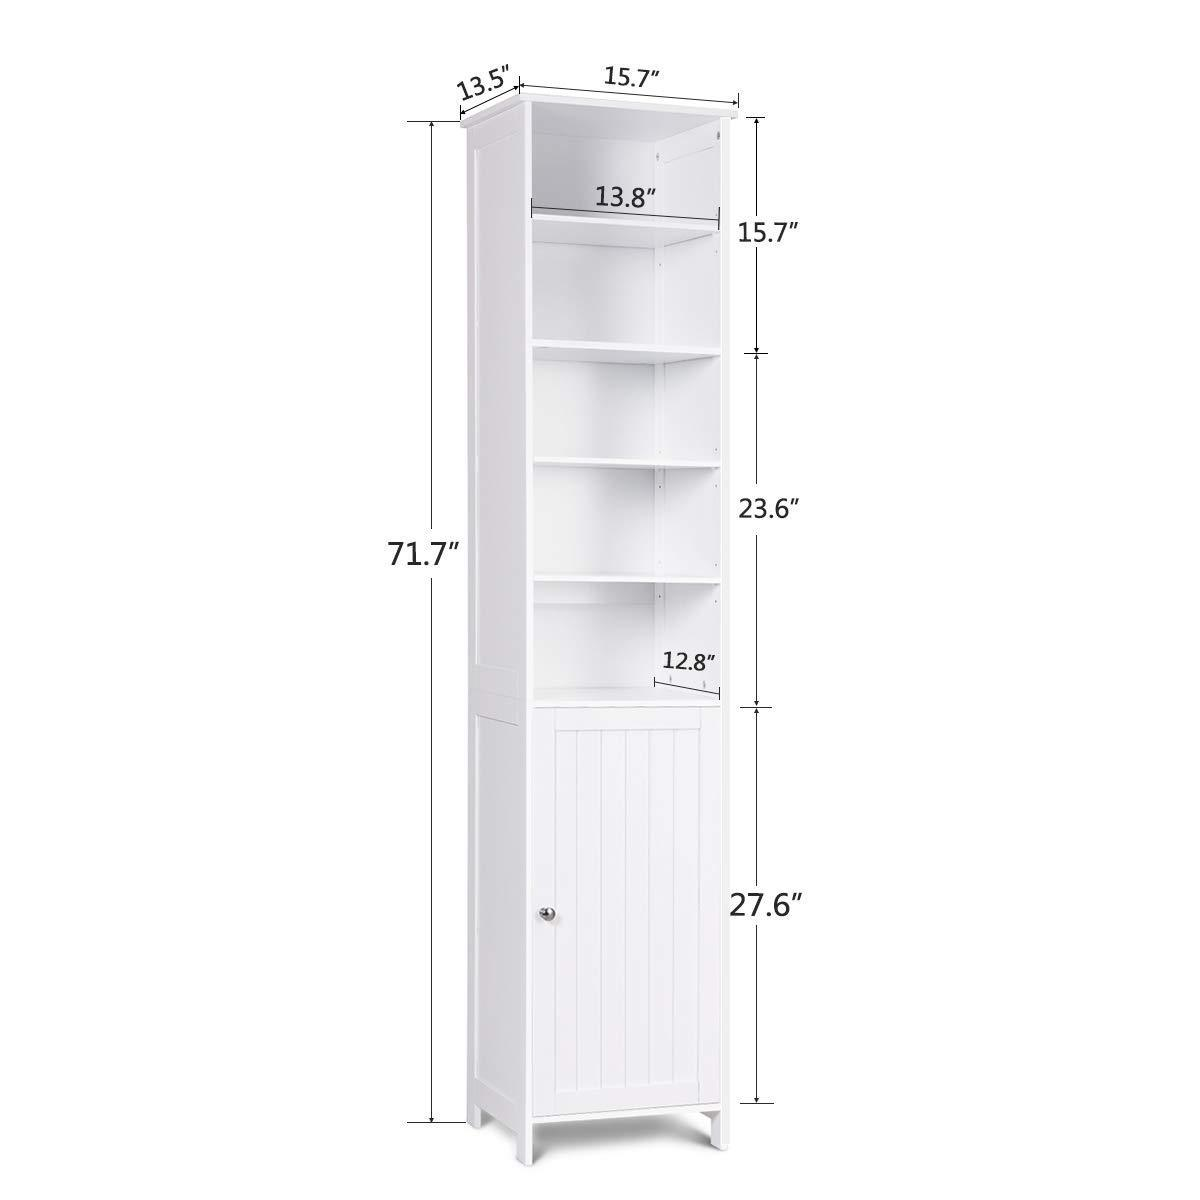 New 72 tall cabinet waterjoy standing tall storage cabinet wooden white bathroom cupboard with door and 5 adjustable shelves elegant and space saving